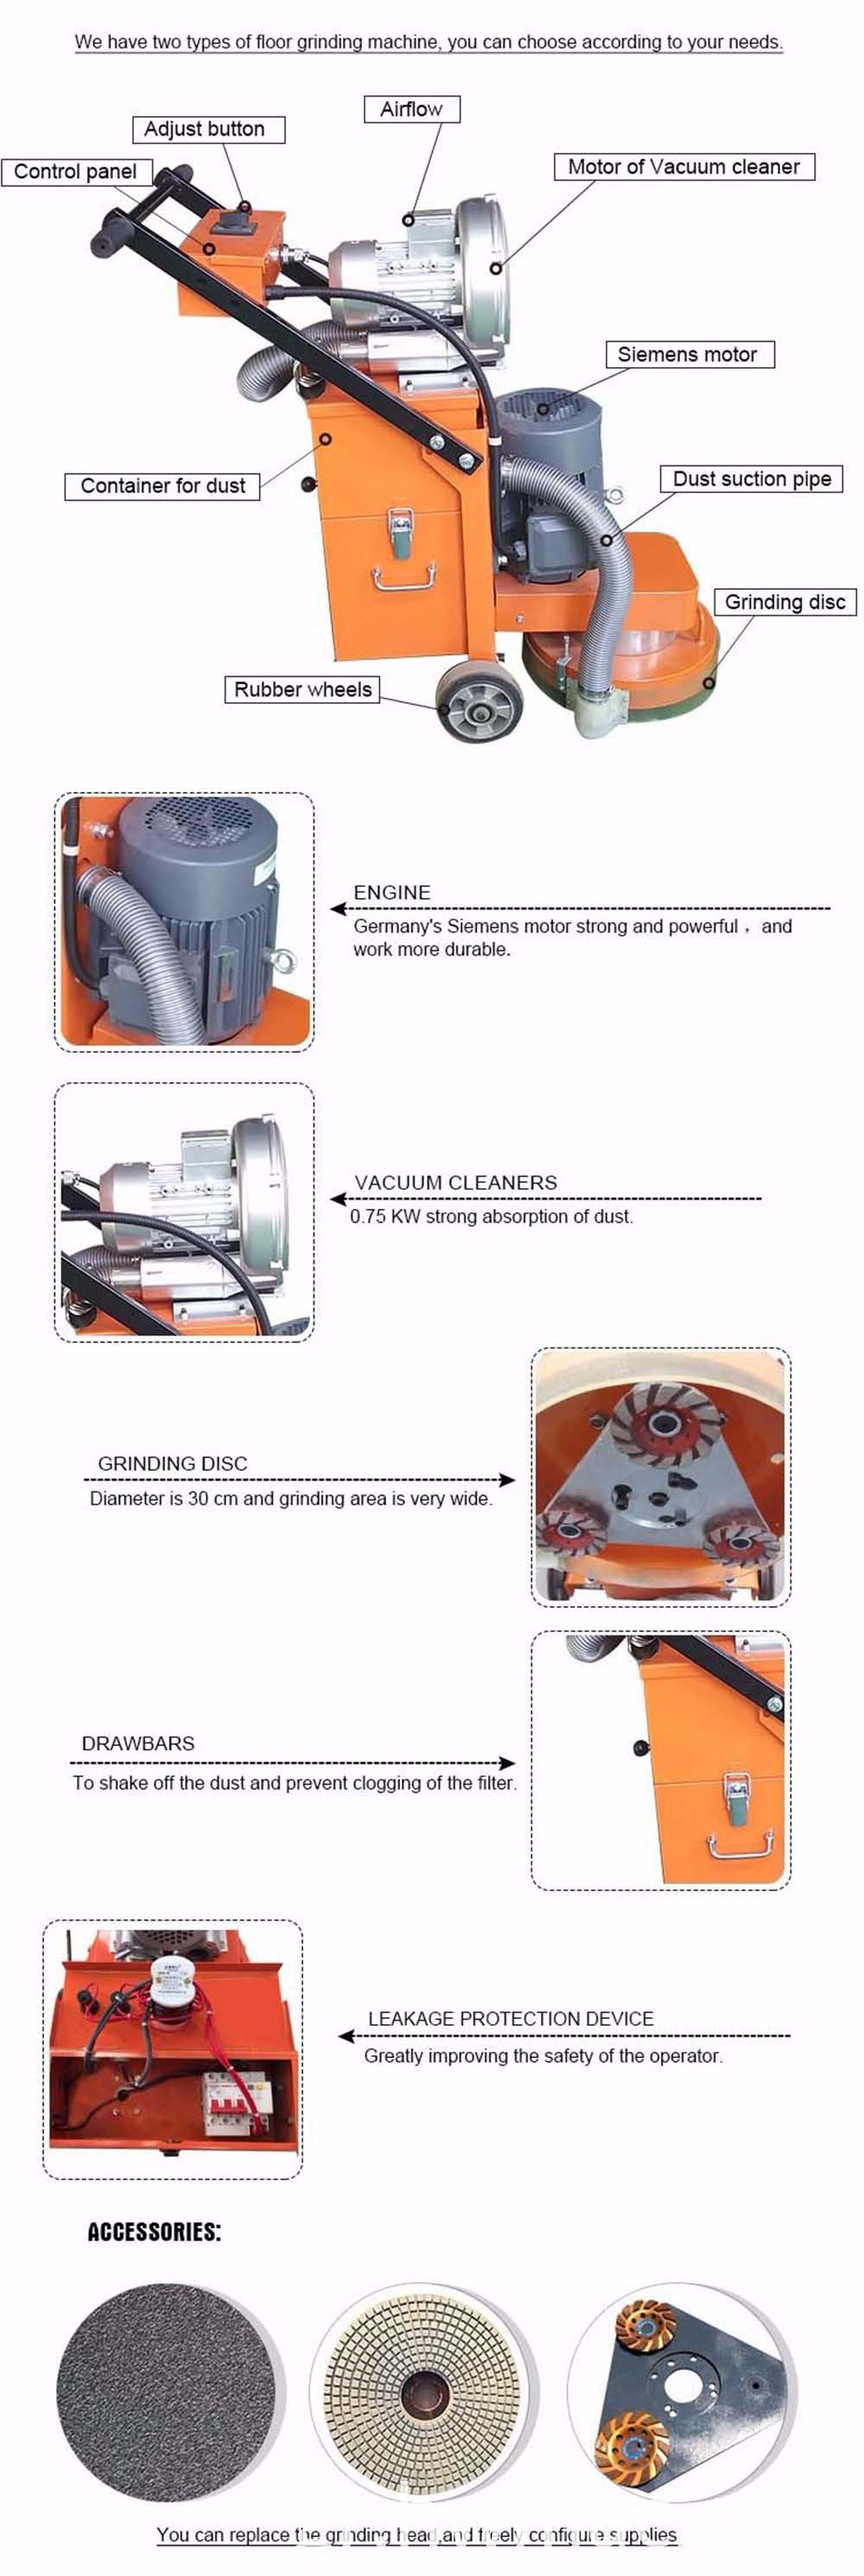 concrete polishing machine details show